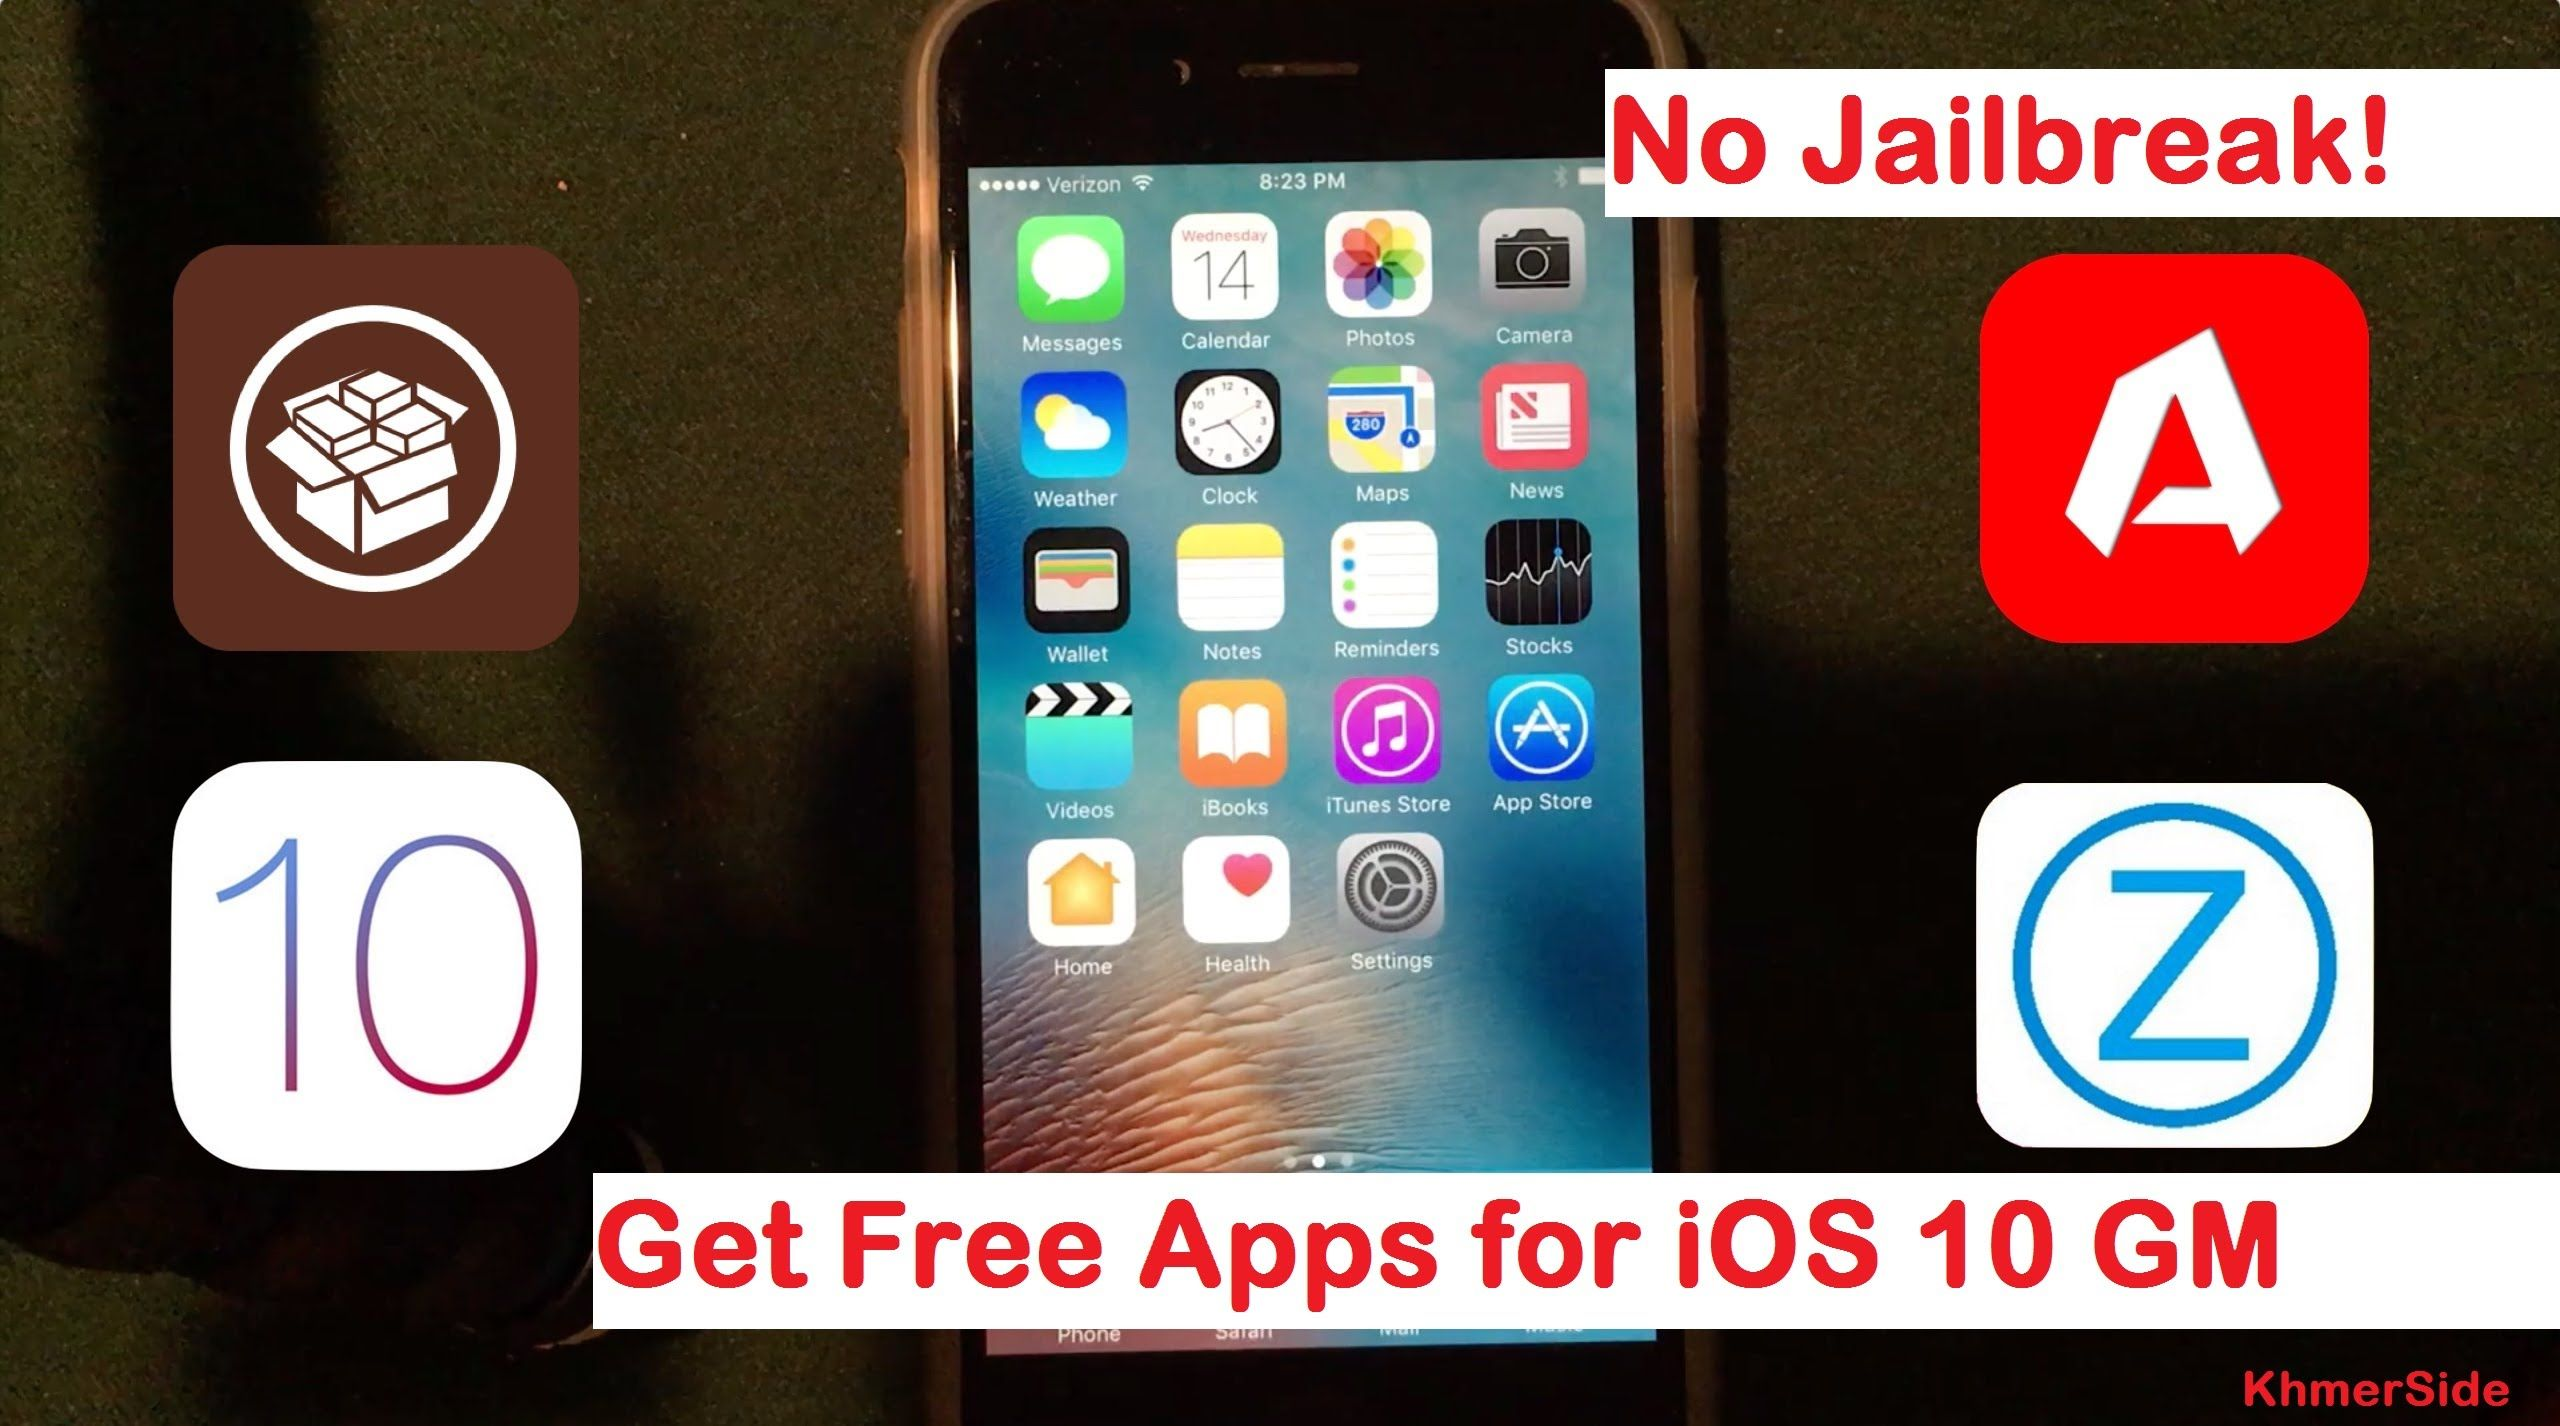 install jailbreak apps on iOS 10 without jailbreaking